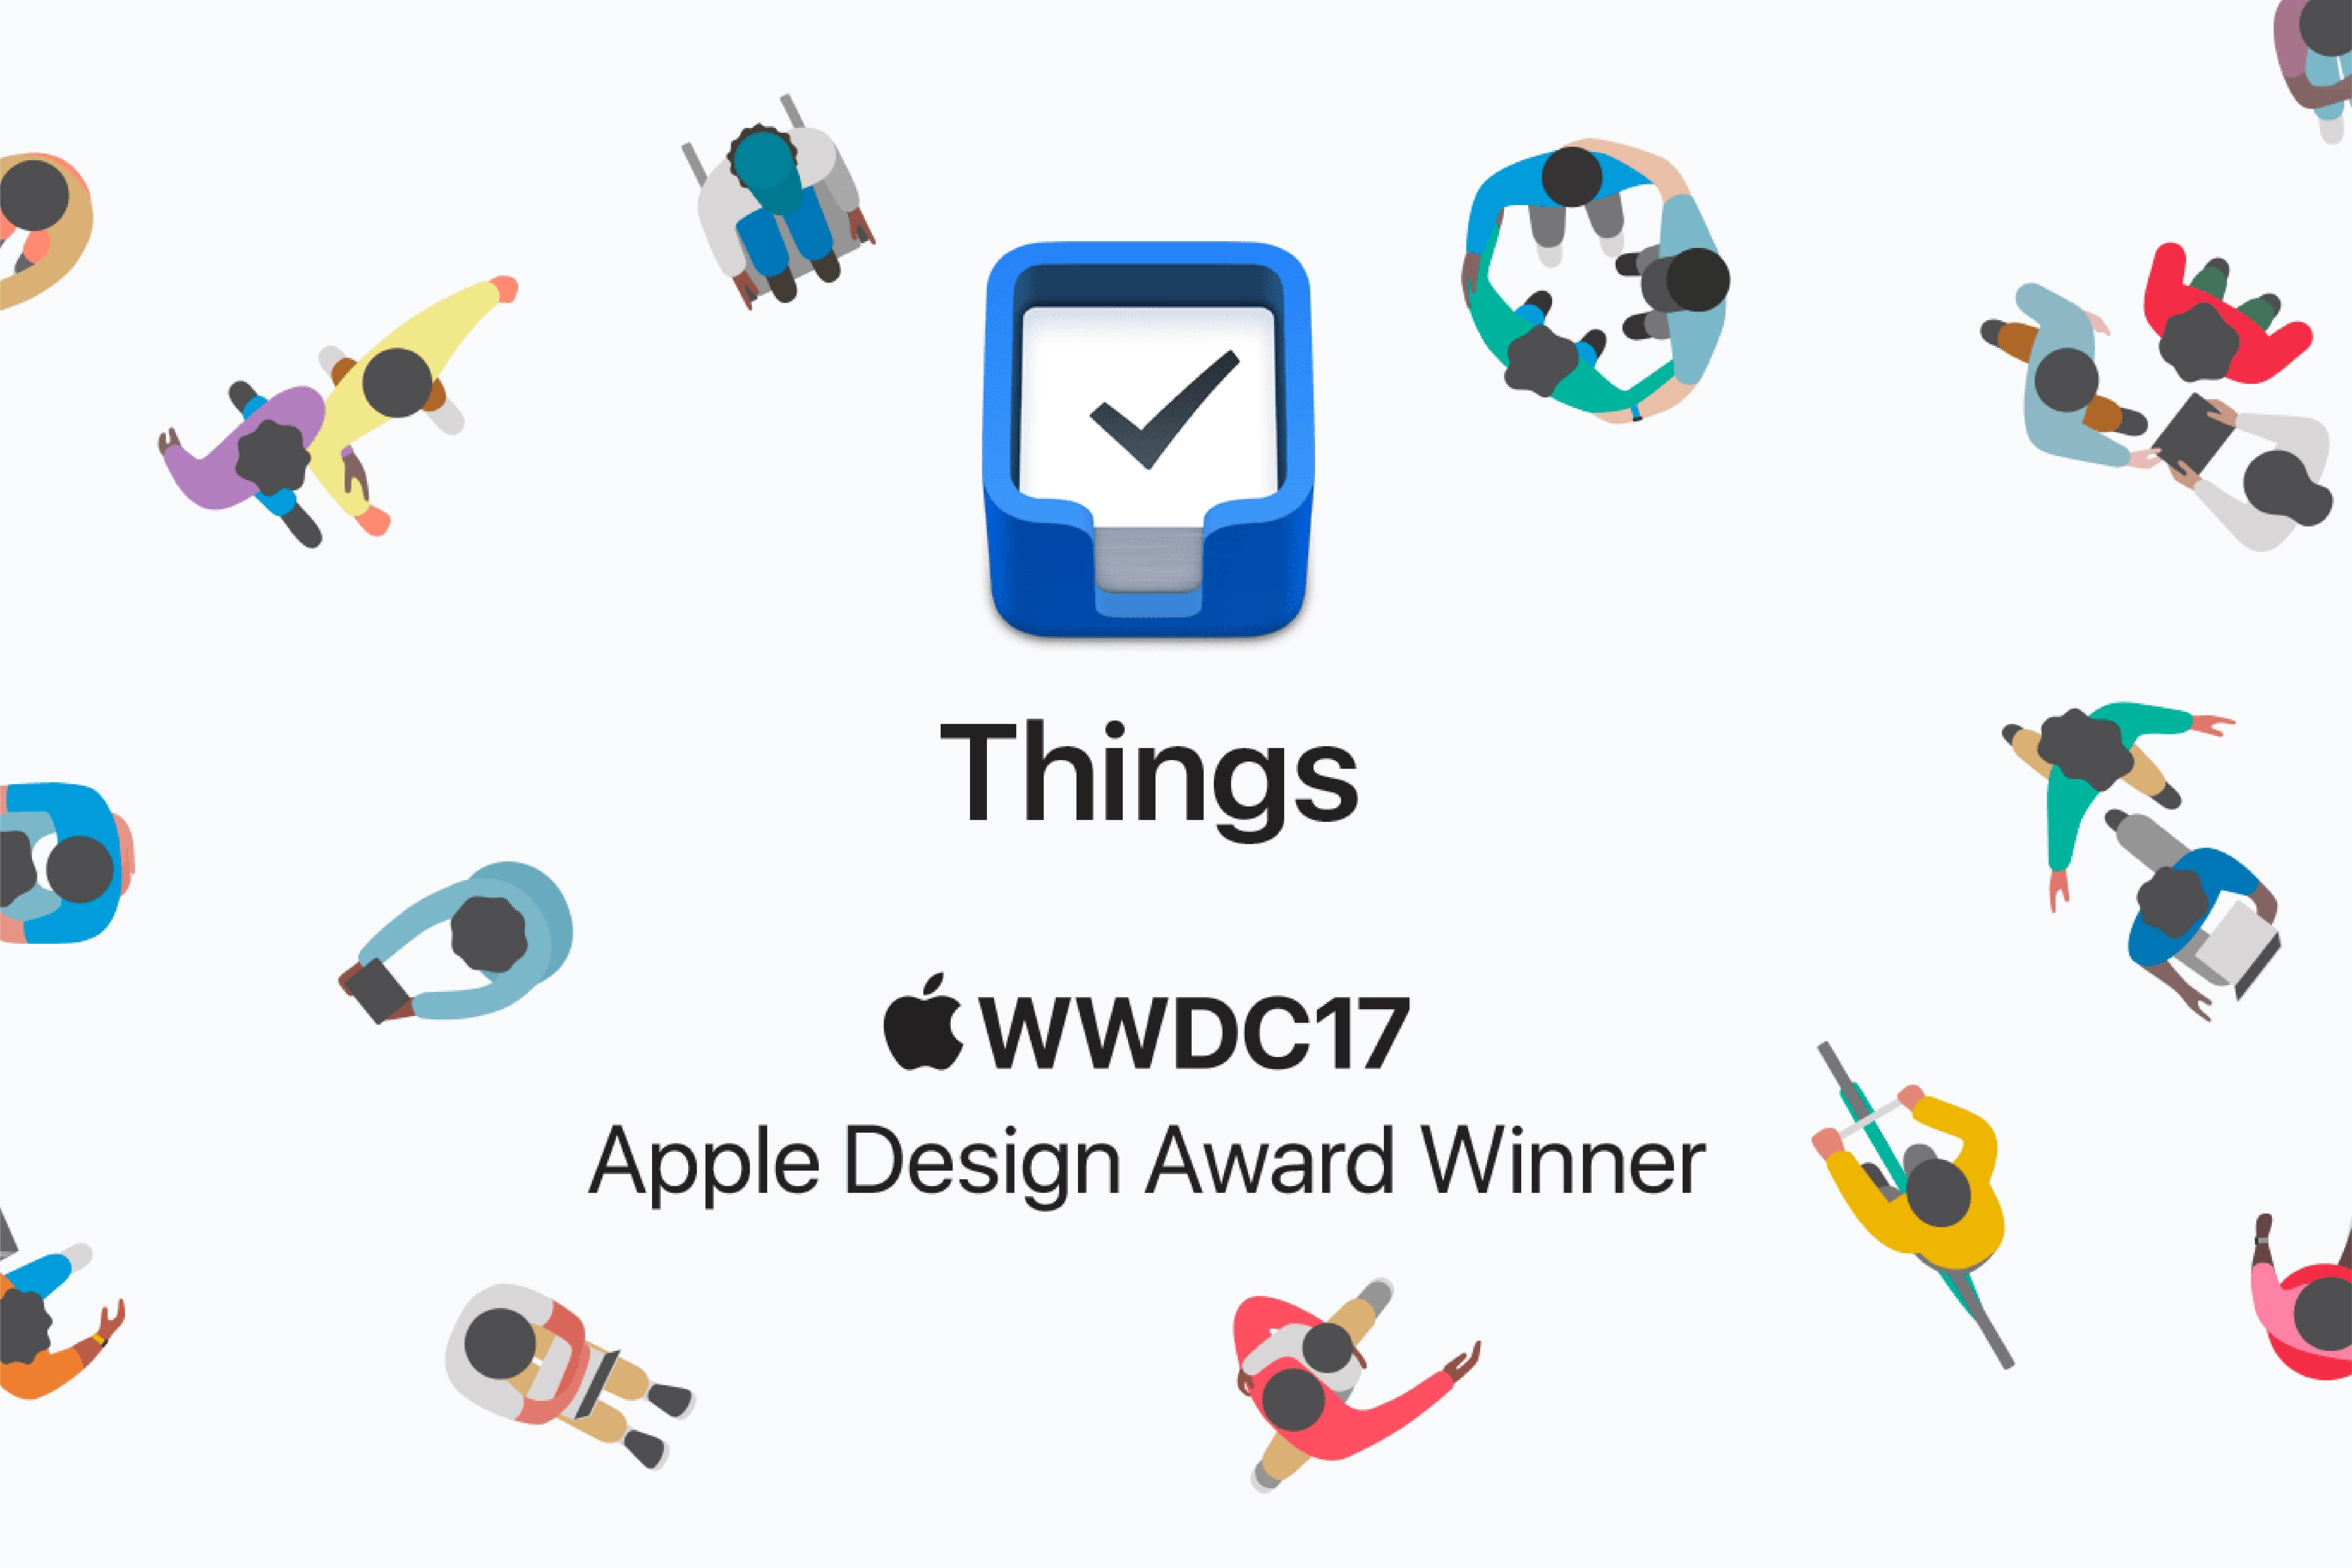 apple-silicon-prompts-third-party-developers-to-optimize-their-apps-for-macos-11-20201112-4